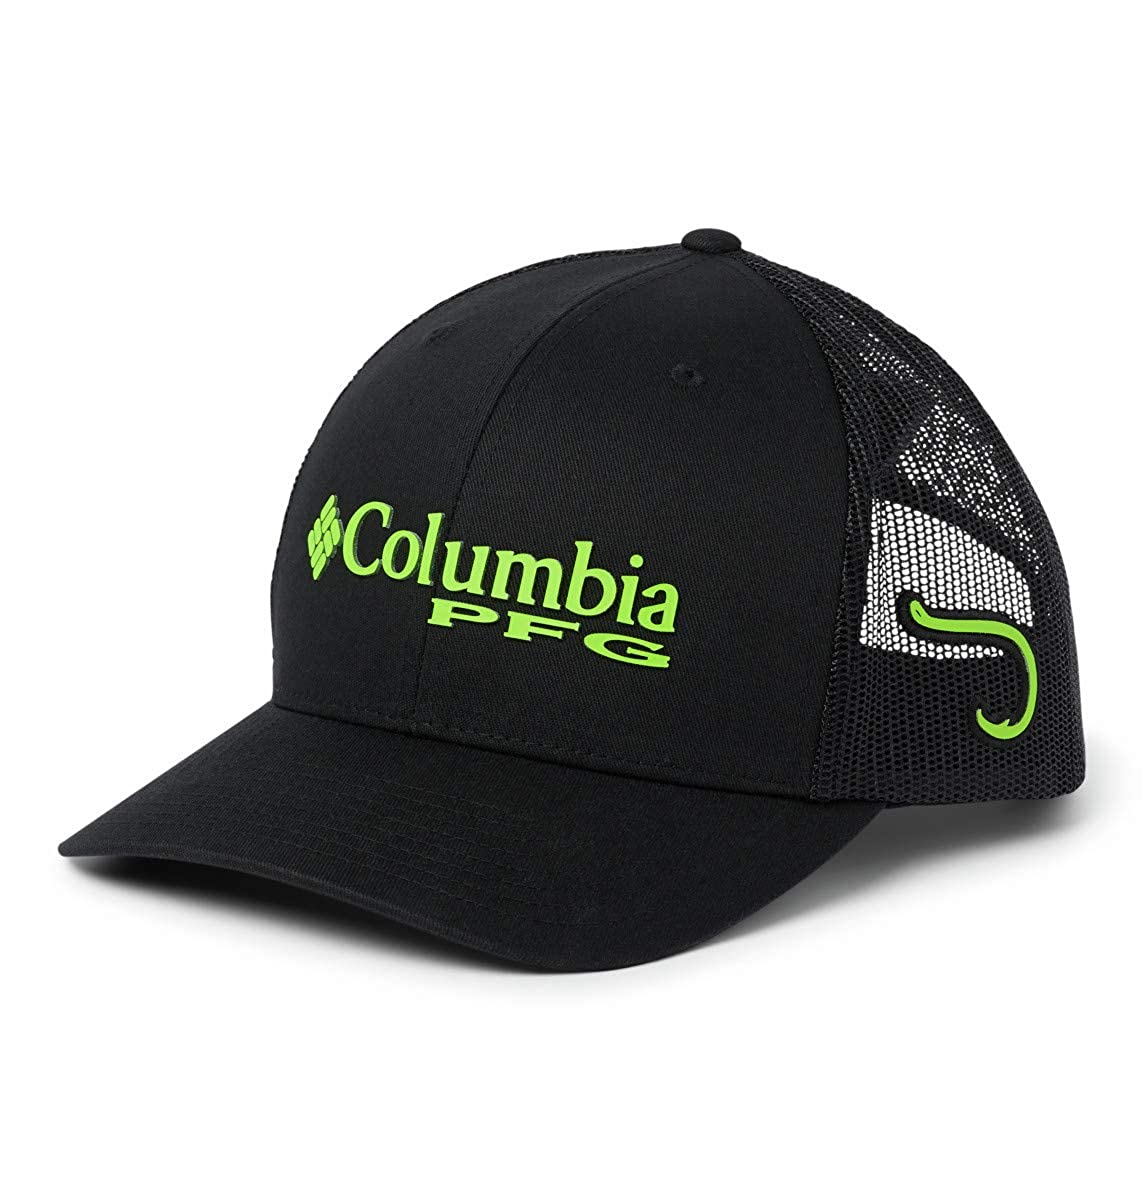 Columbia PFG Mesh Snap Back Ball Cap: Amazon.es: Deportes y aire libre